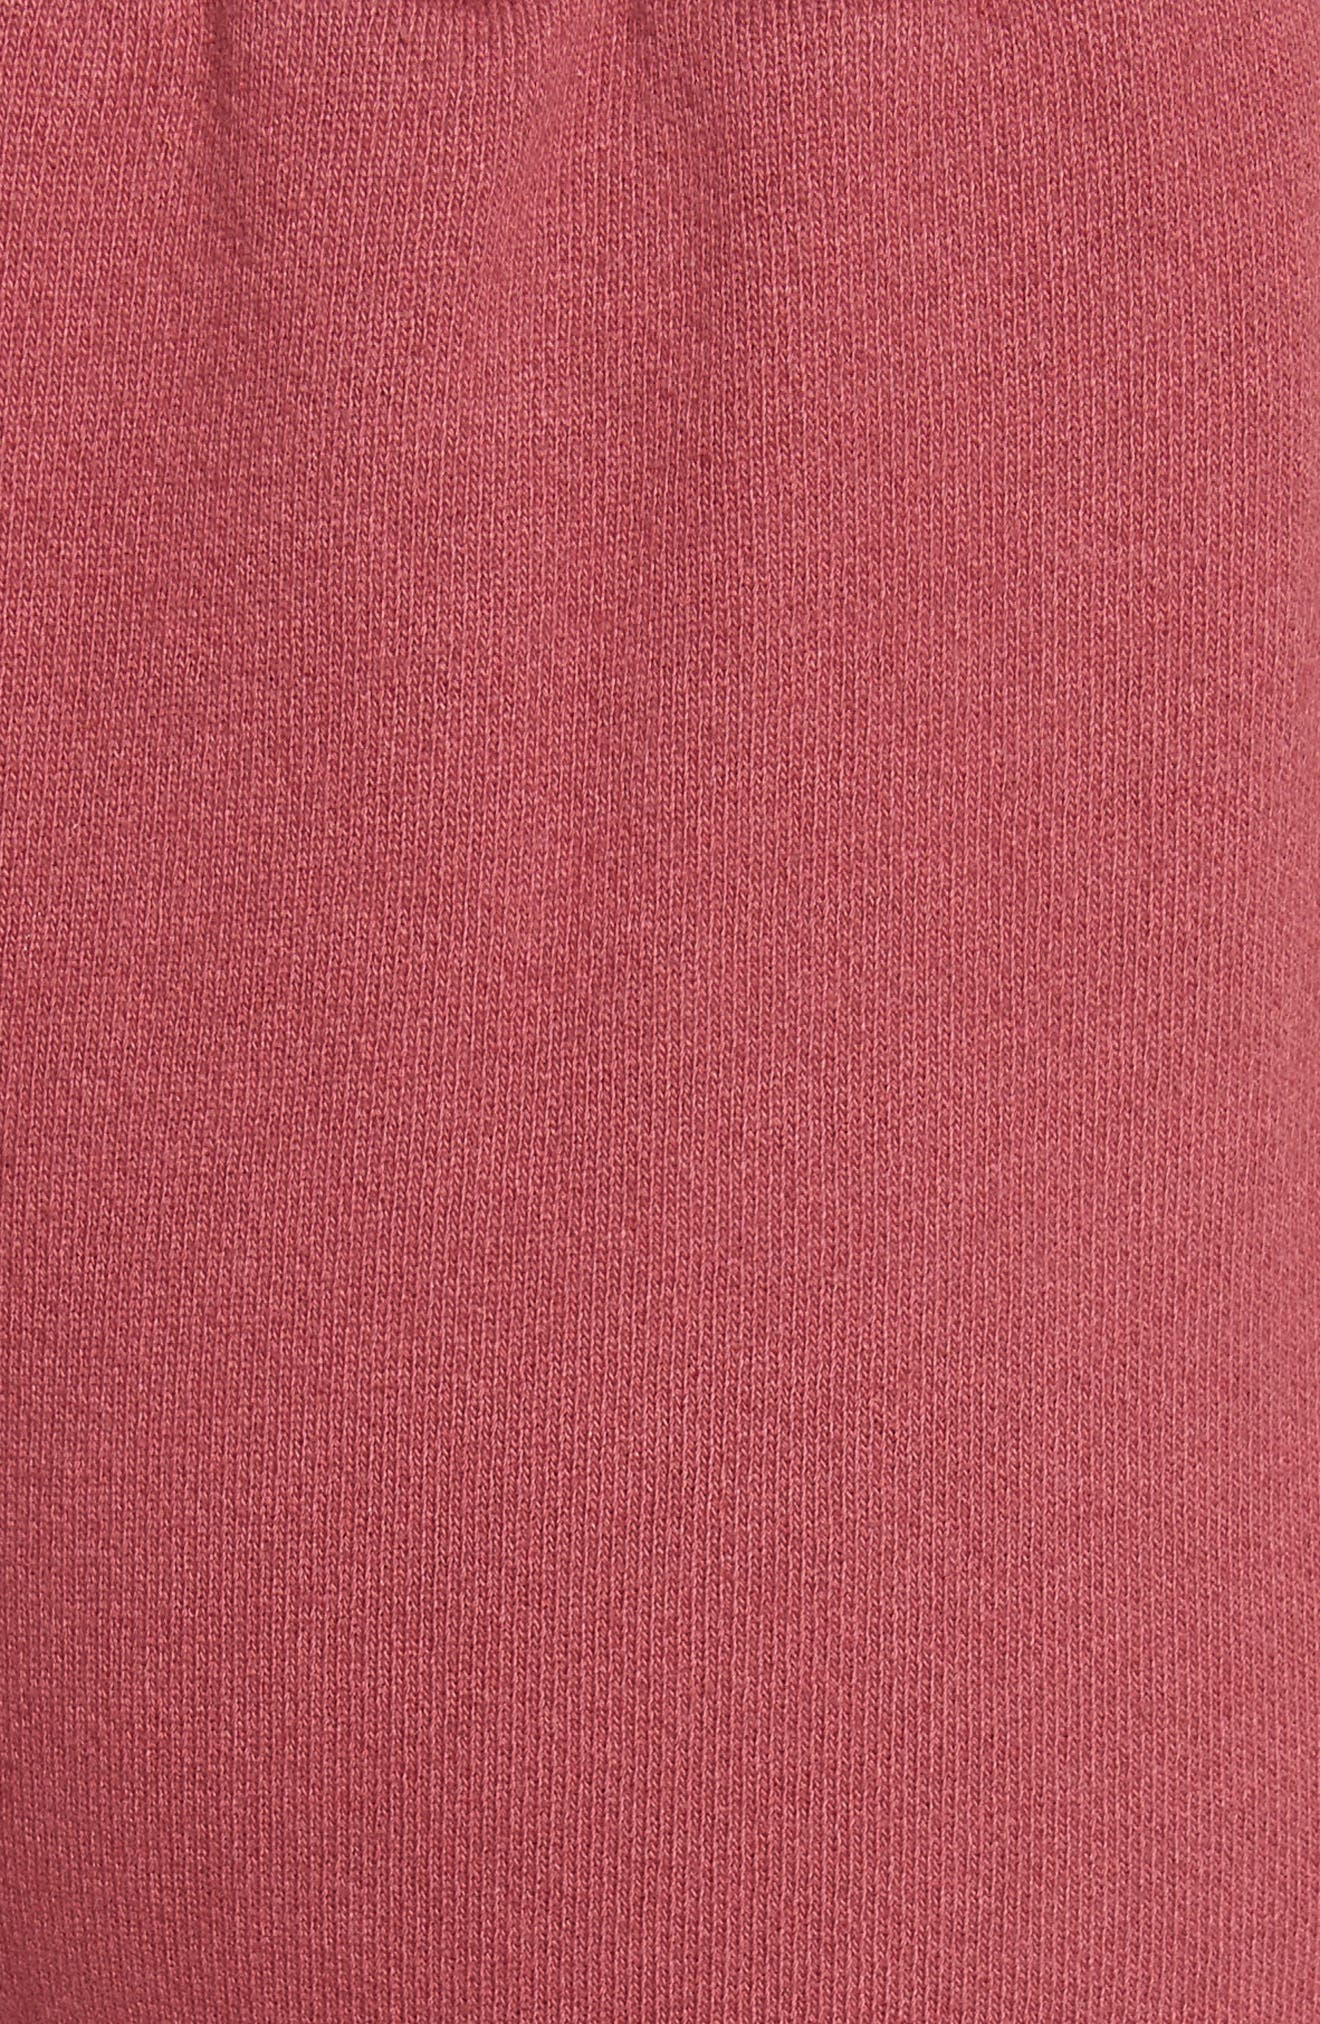 Canal French Terry Sweatpants,                             Alternate thumbnail 3, color,                             Tegola Pink